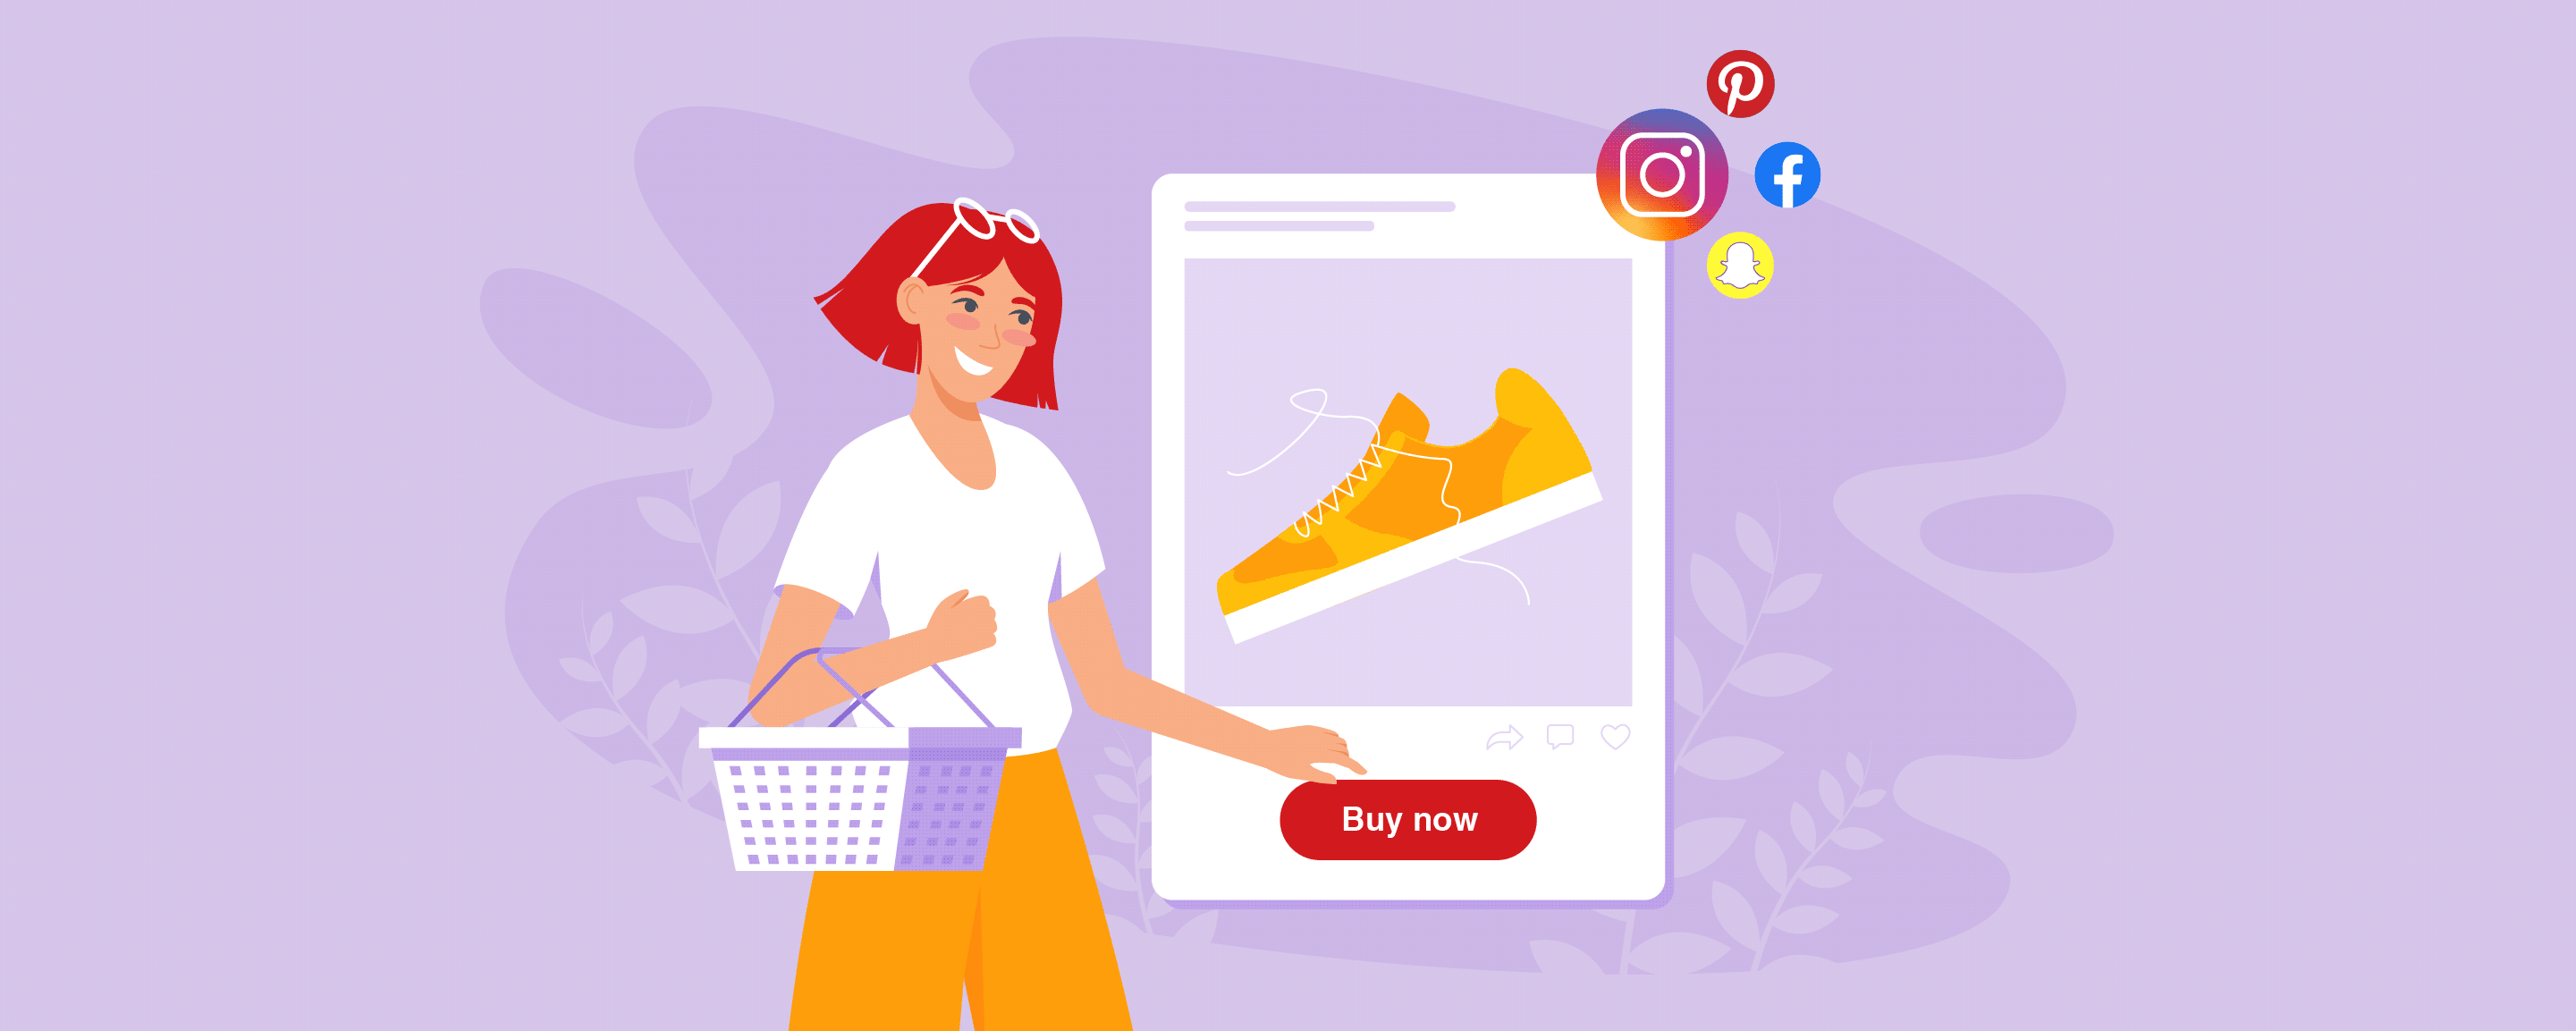 Social Commerce: How to Sell on Social Media in 2019-20